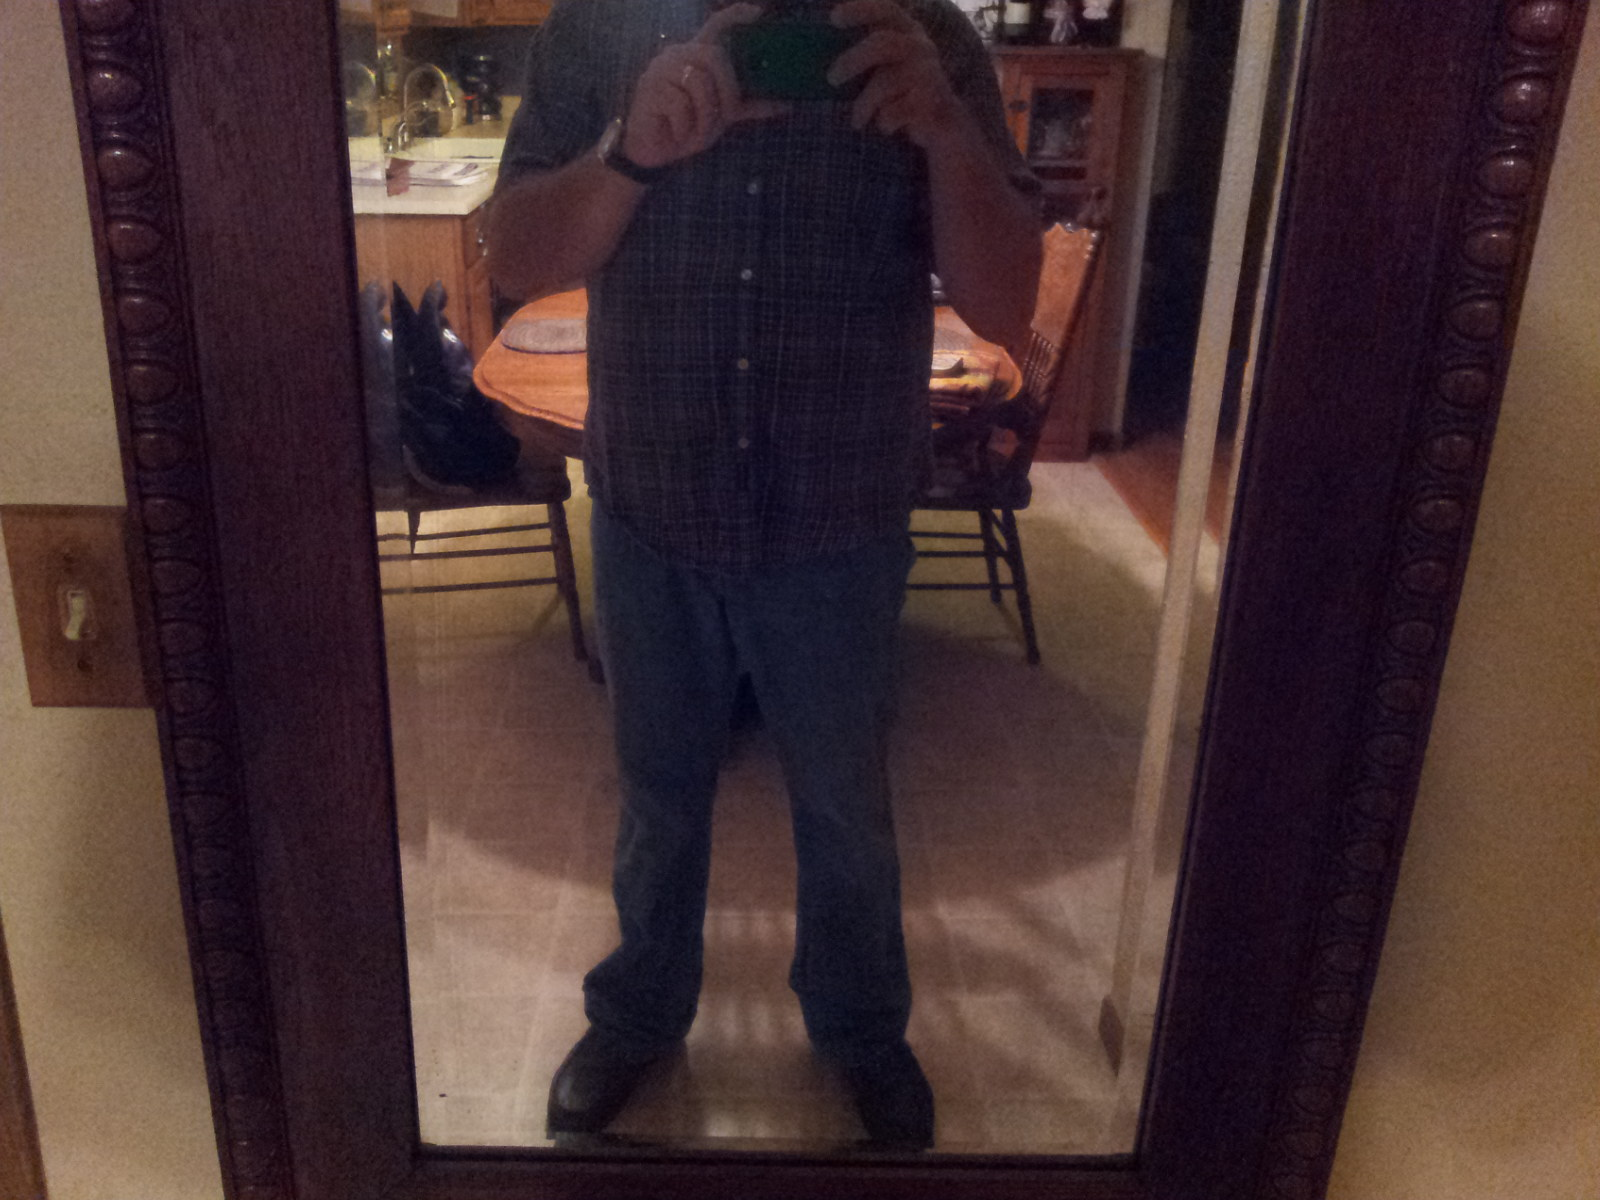 Let's See Your Pic's - How You Carry Concealed.-2012-11-20_05.52.53.jpg